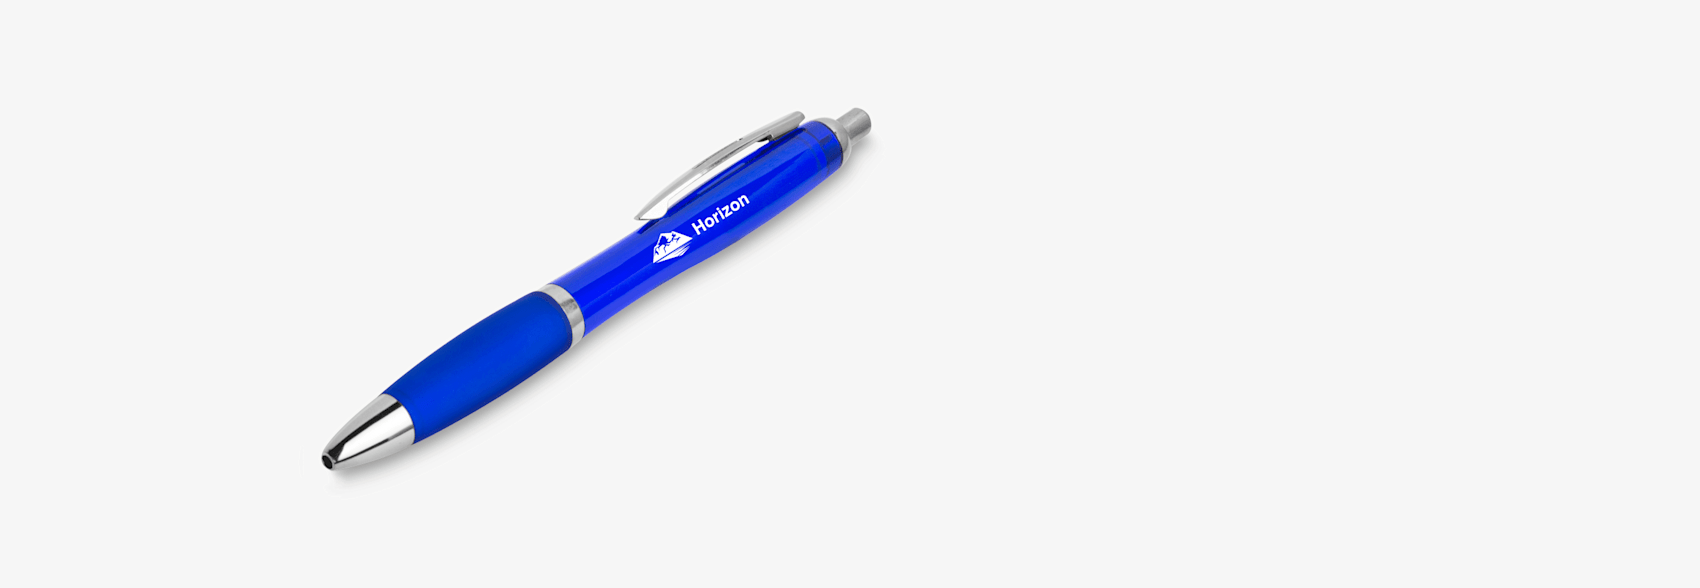 Promotional Pen with logo